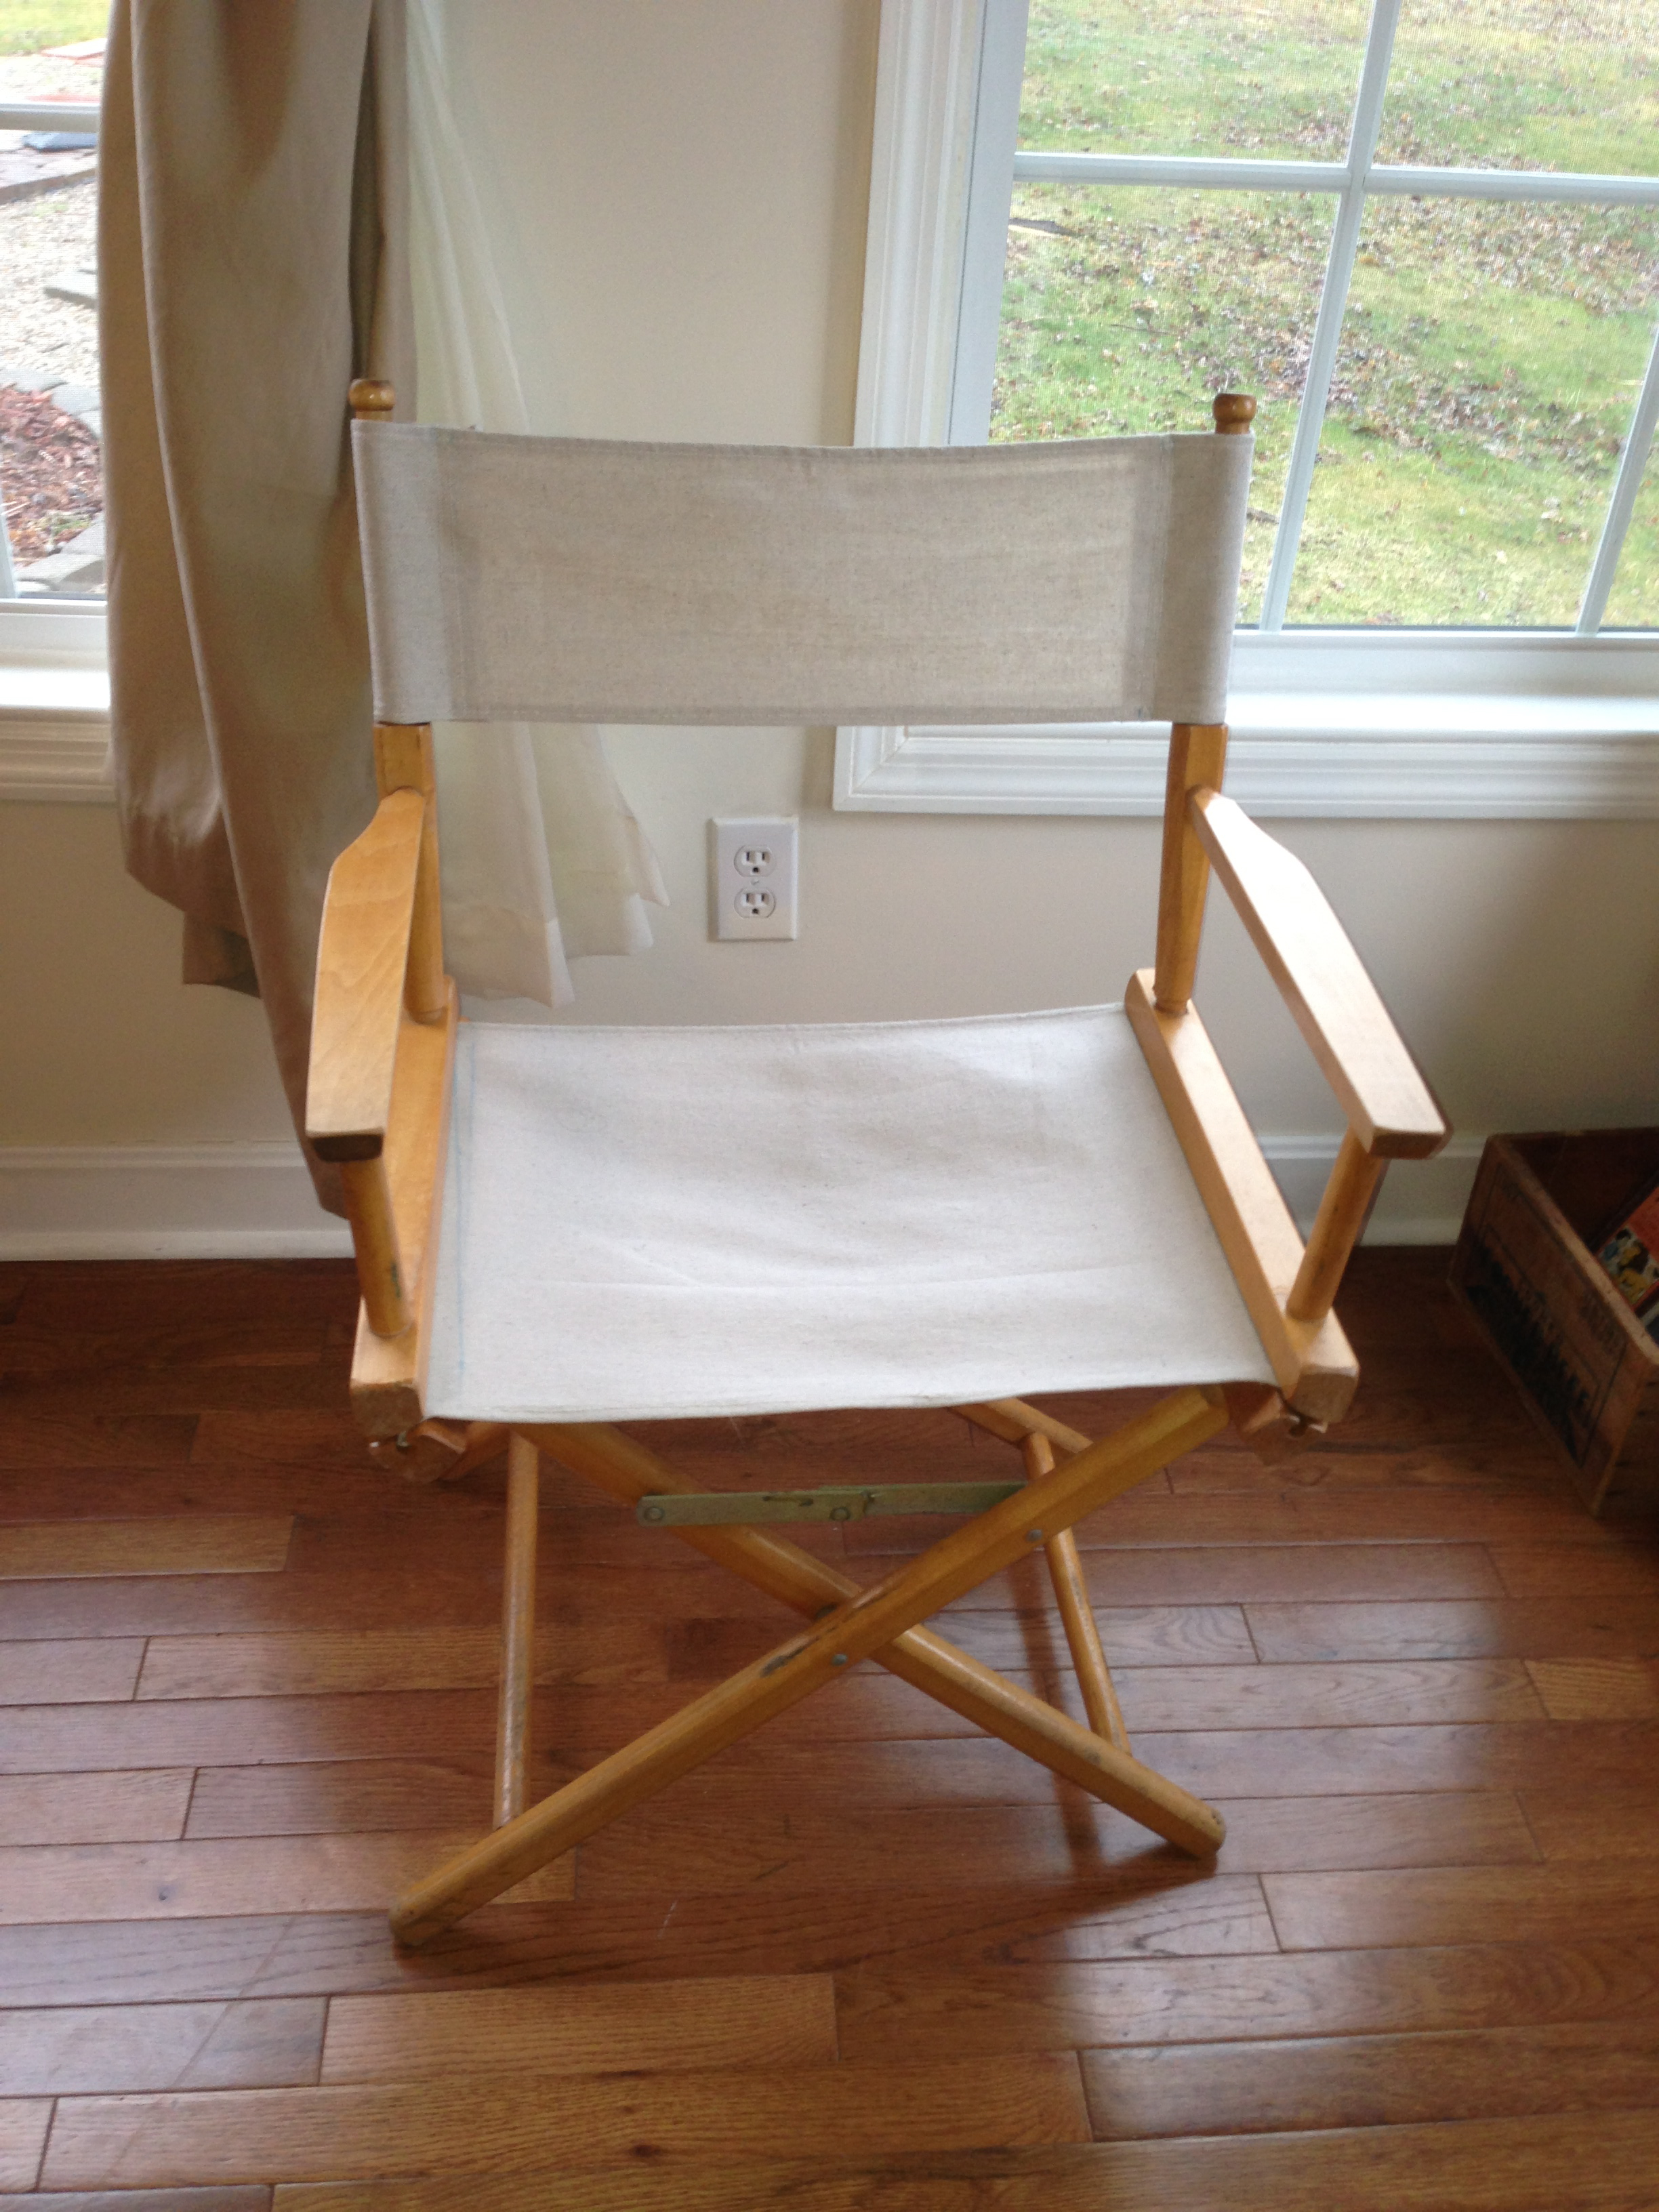 Attractive Directors Chair Replacement Canvas for Best Director Chair Ideas: Canvas Director Chair Covers | Tall Directors Chairs | Directors Chair Replacement Canvas